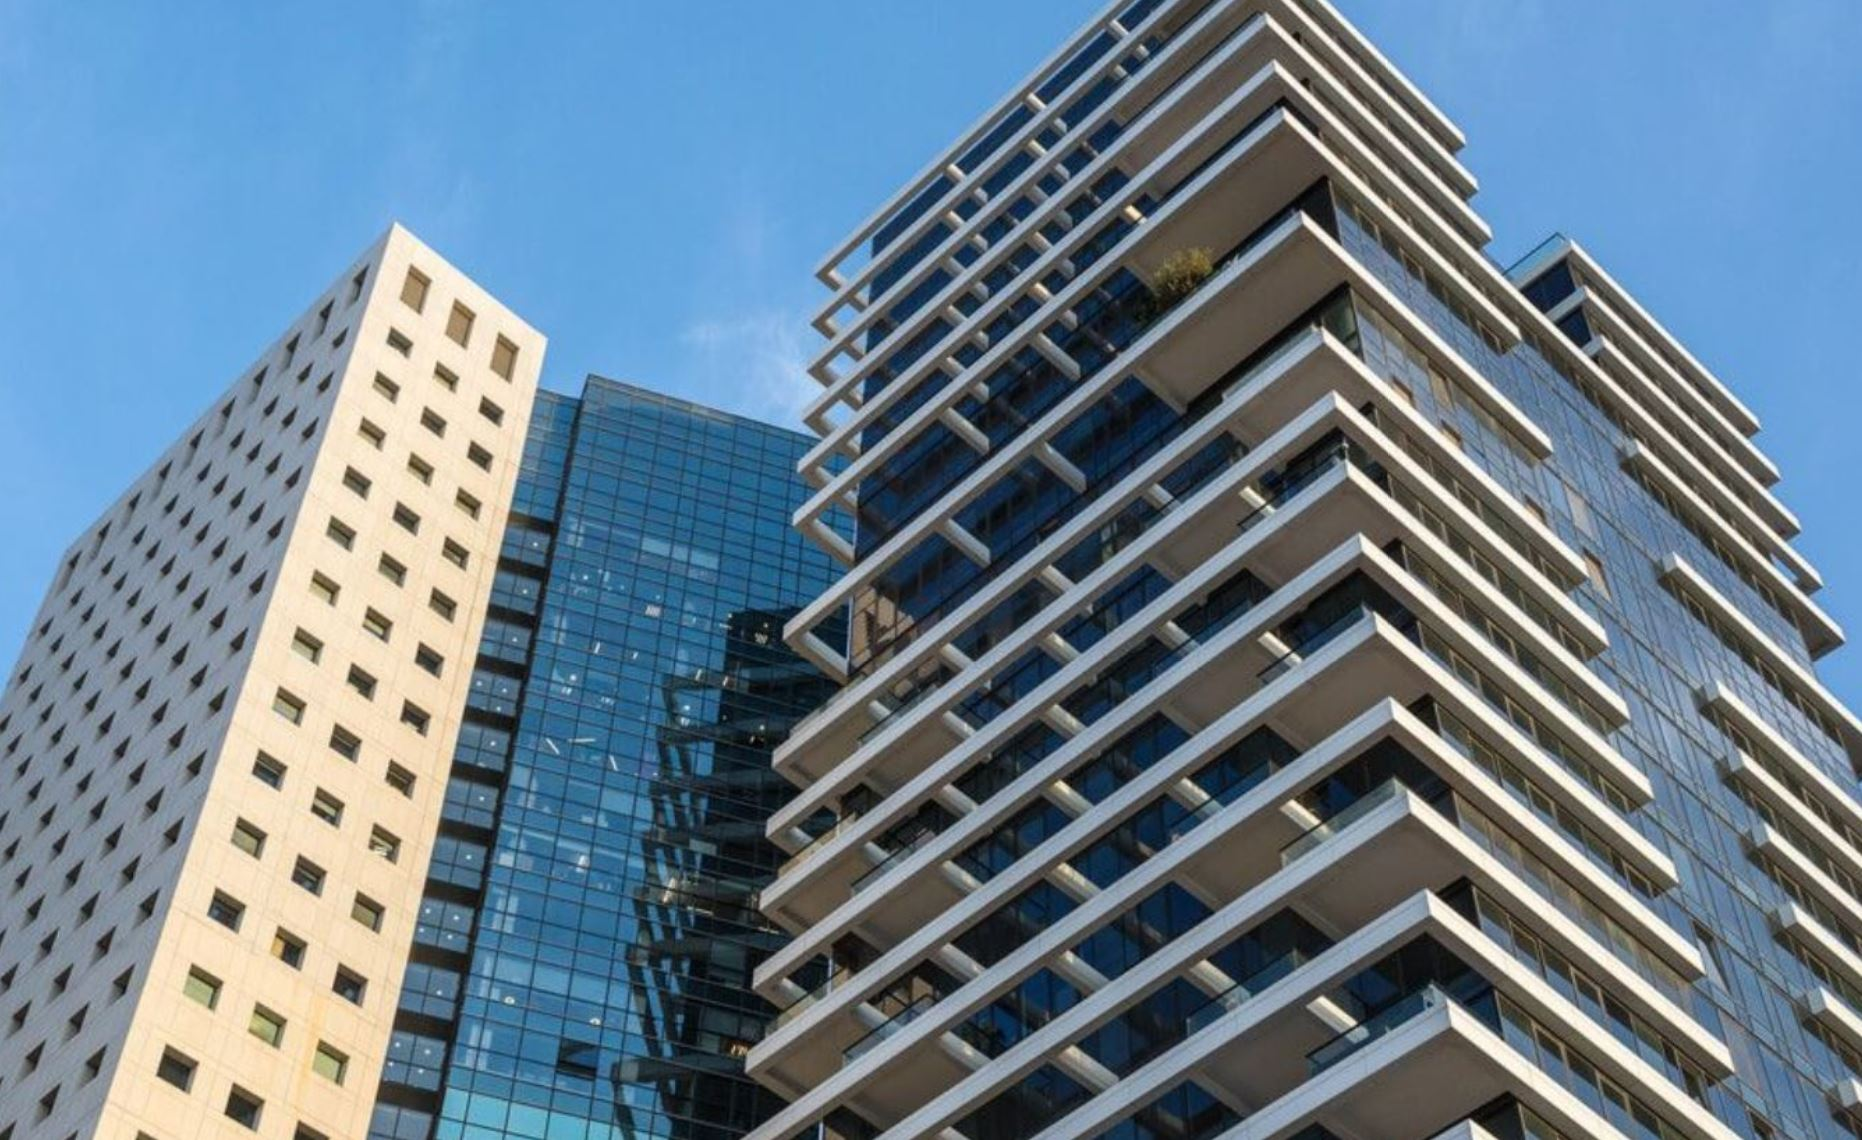 Fire protection systems for high-rises